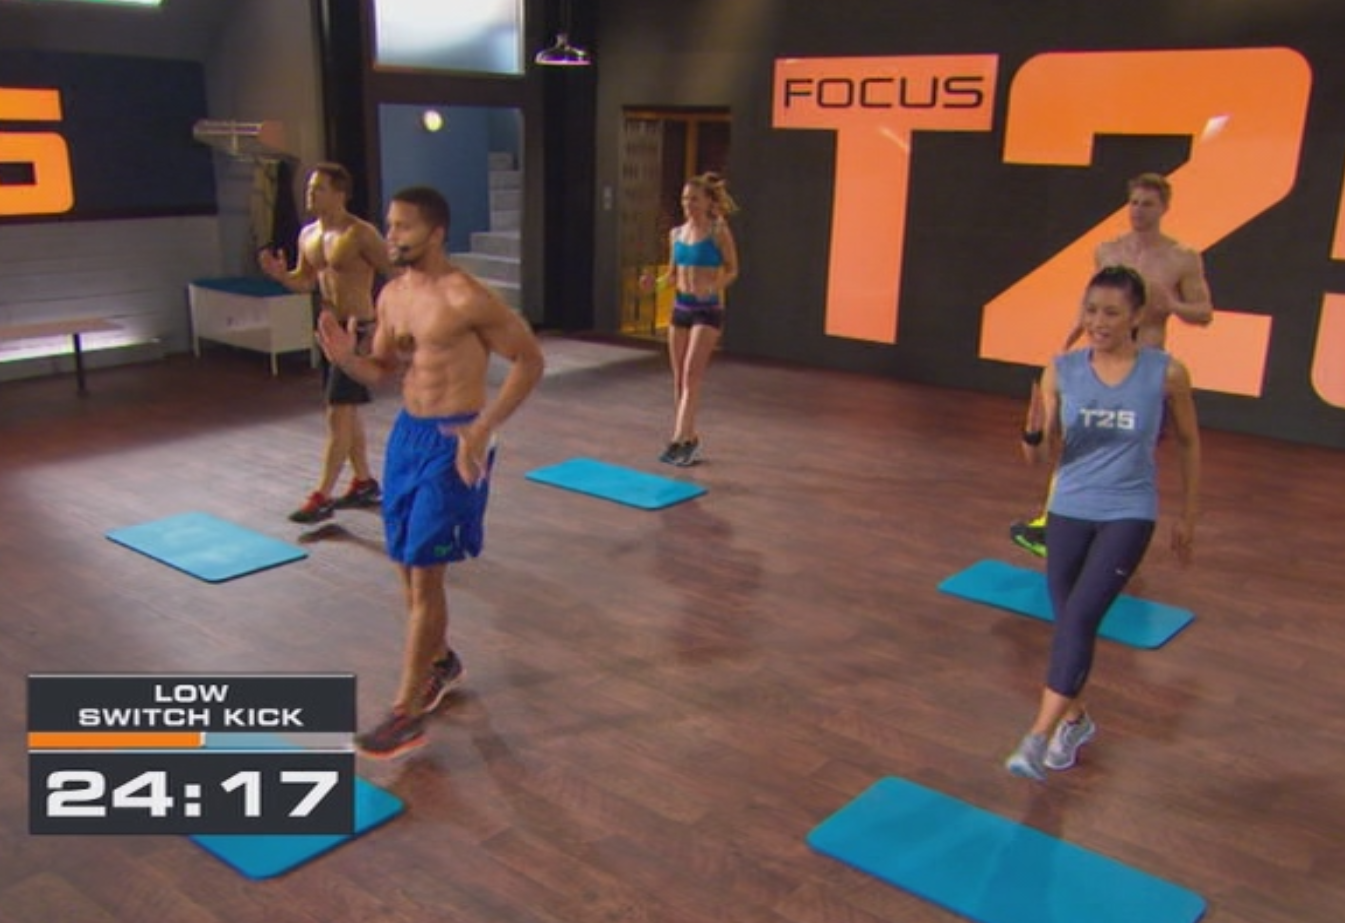 Focus t25 beta phase download | Focus T25 Workout Schedule